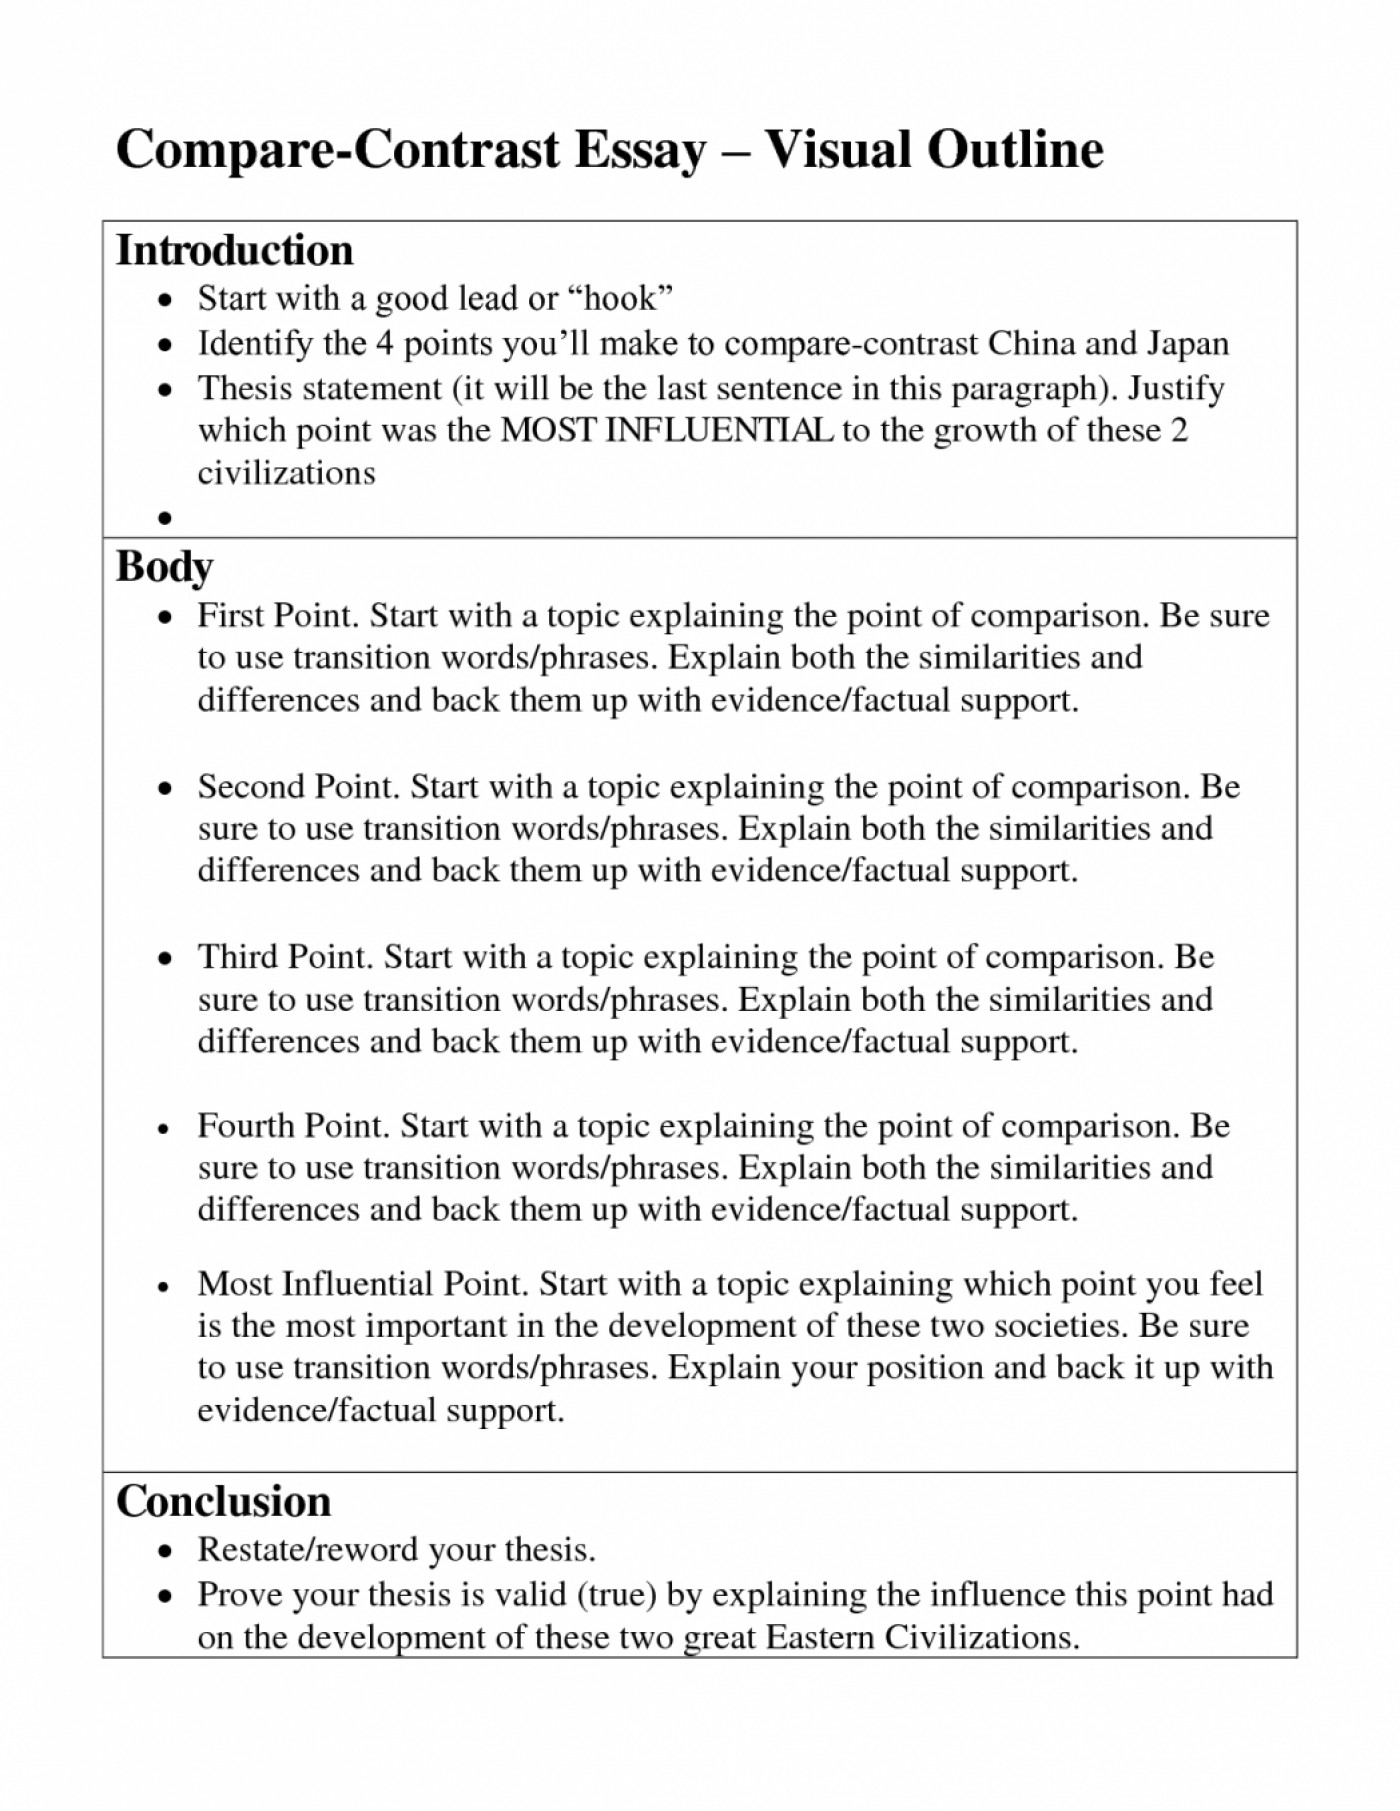 009 Compare And Contrast Essay Topics For High School Students English College Pdf Research Paper 1048x1356 Fantastic Sports Prompts 5th Grade 4th 1400